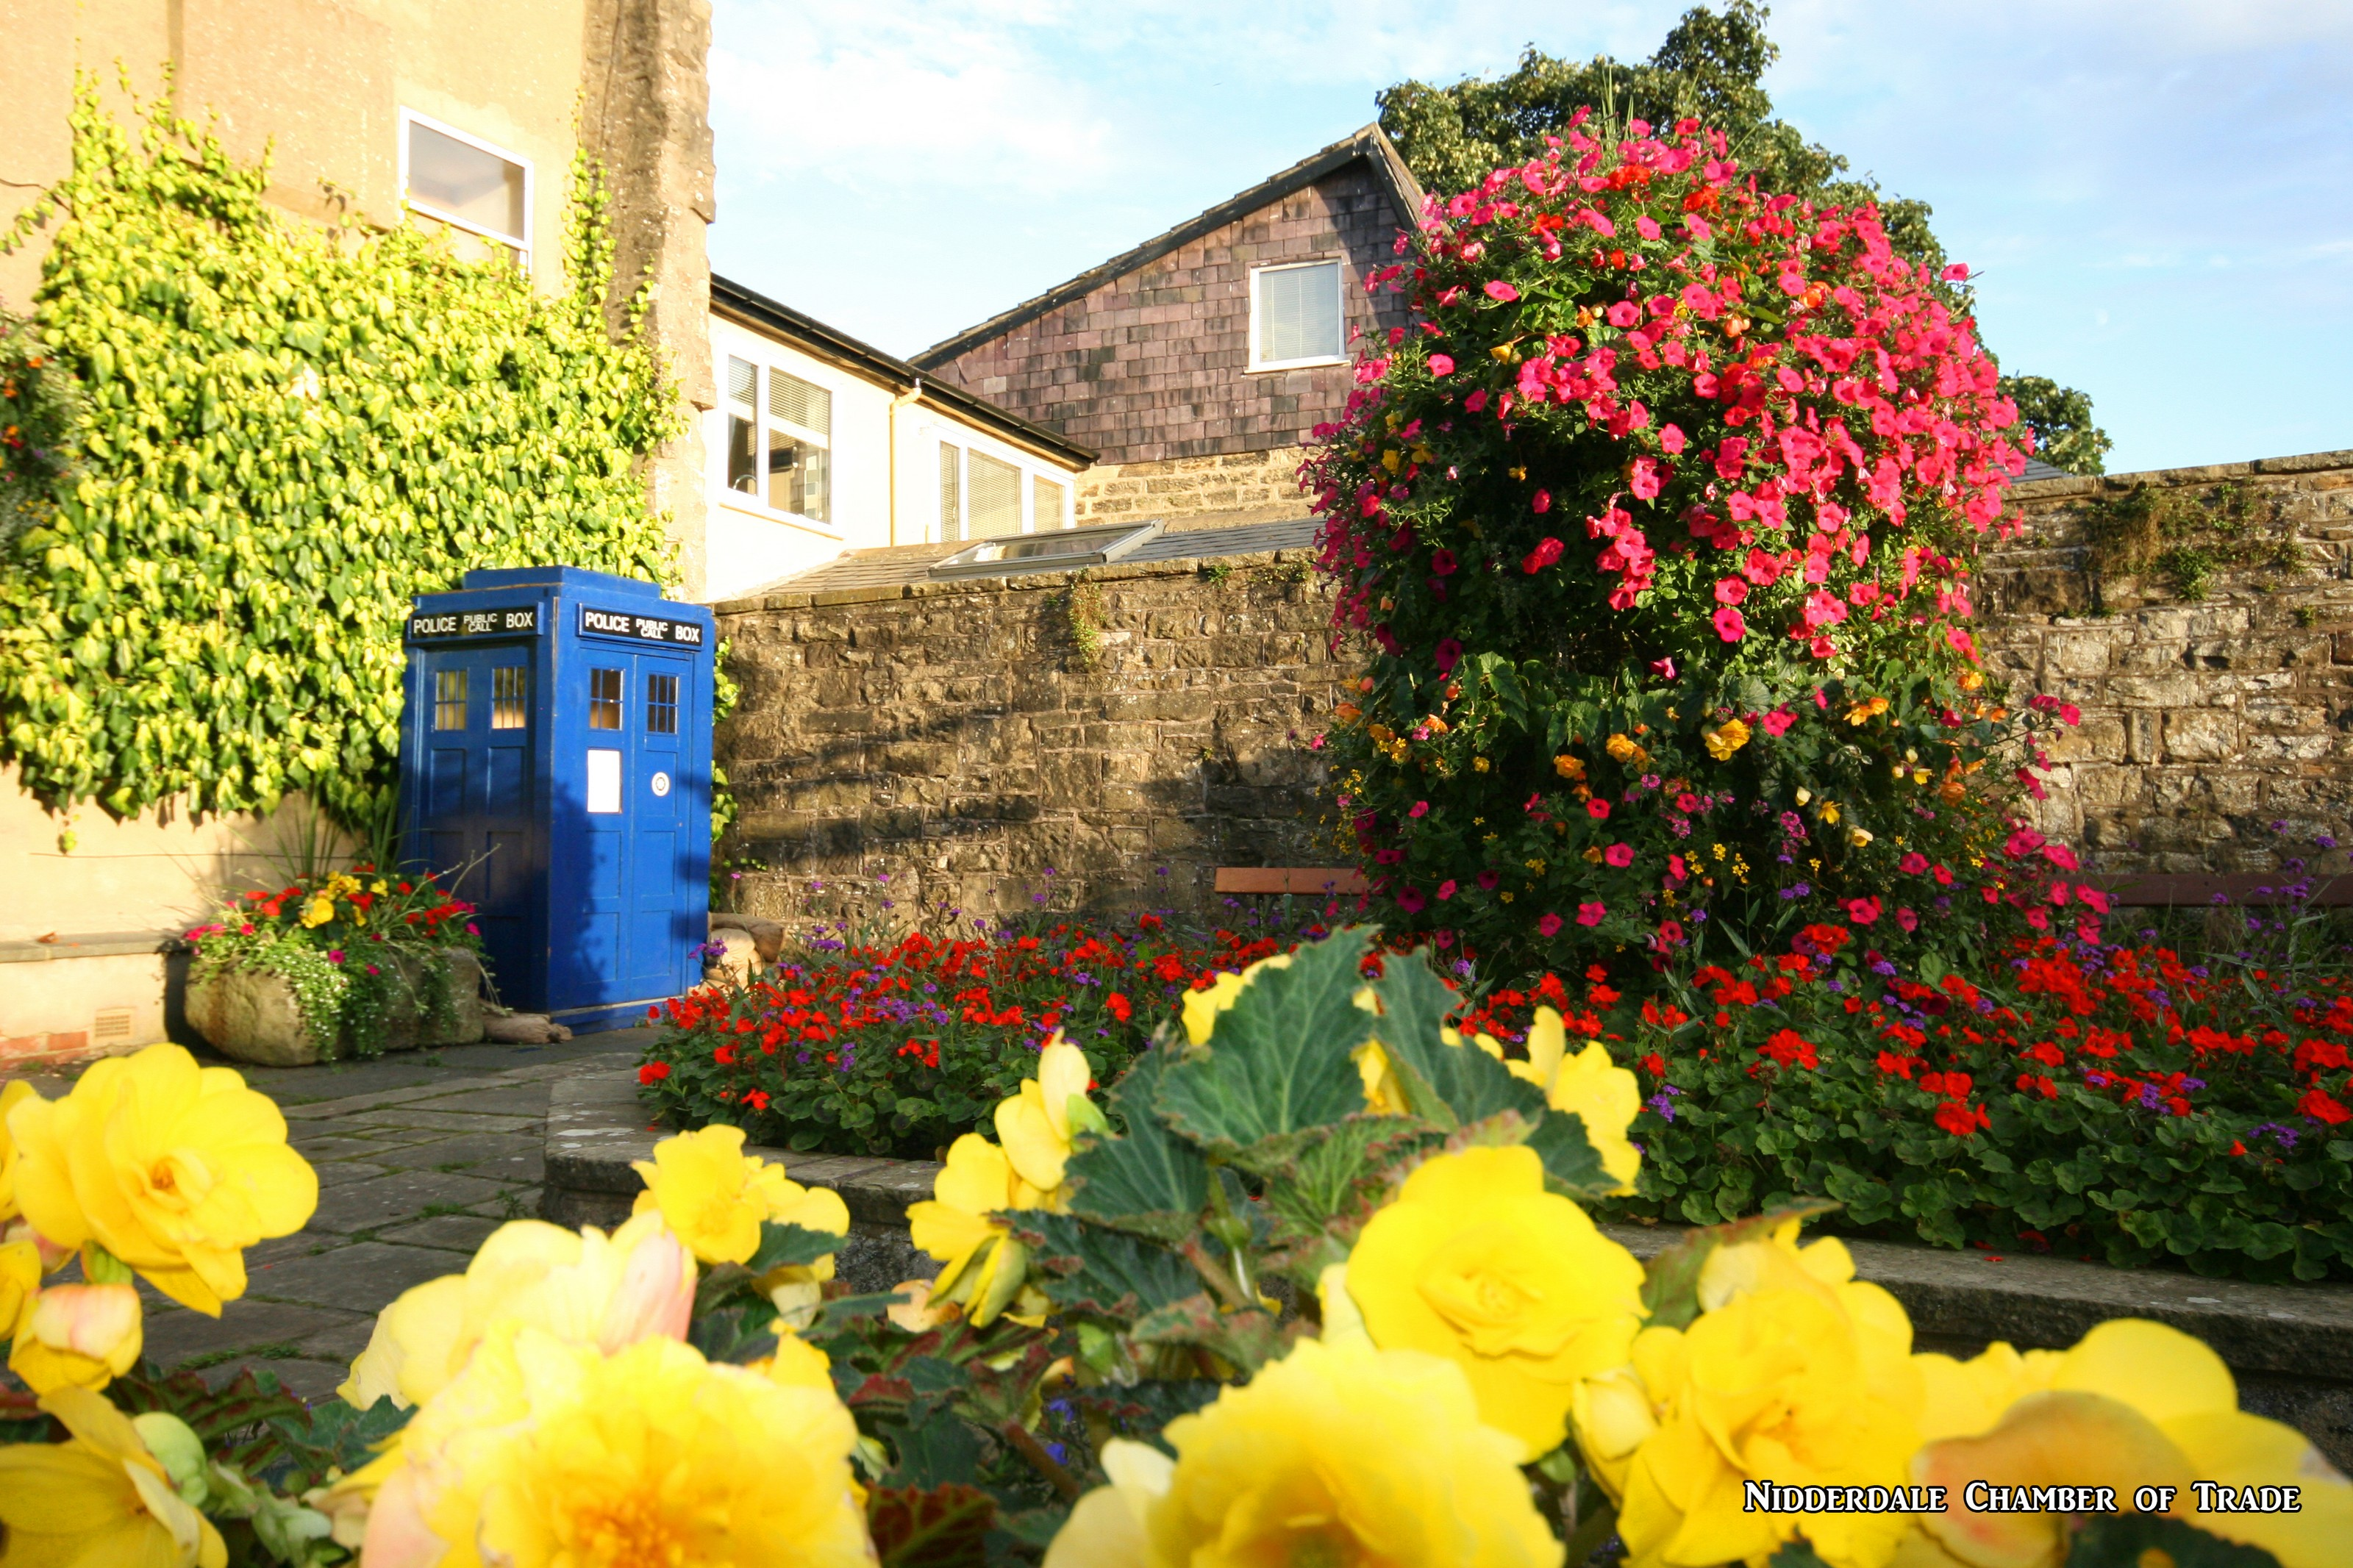 Floral Display with 1940s Police Box